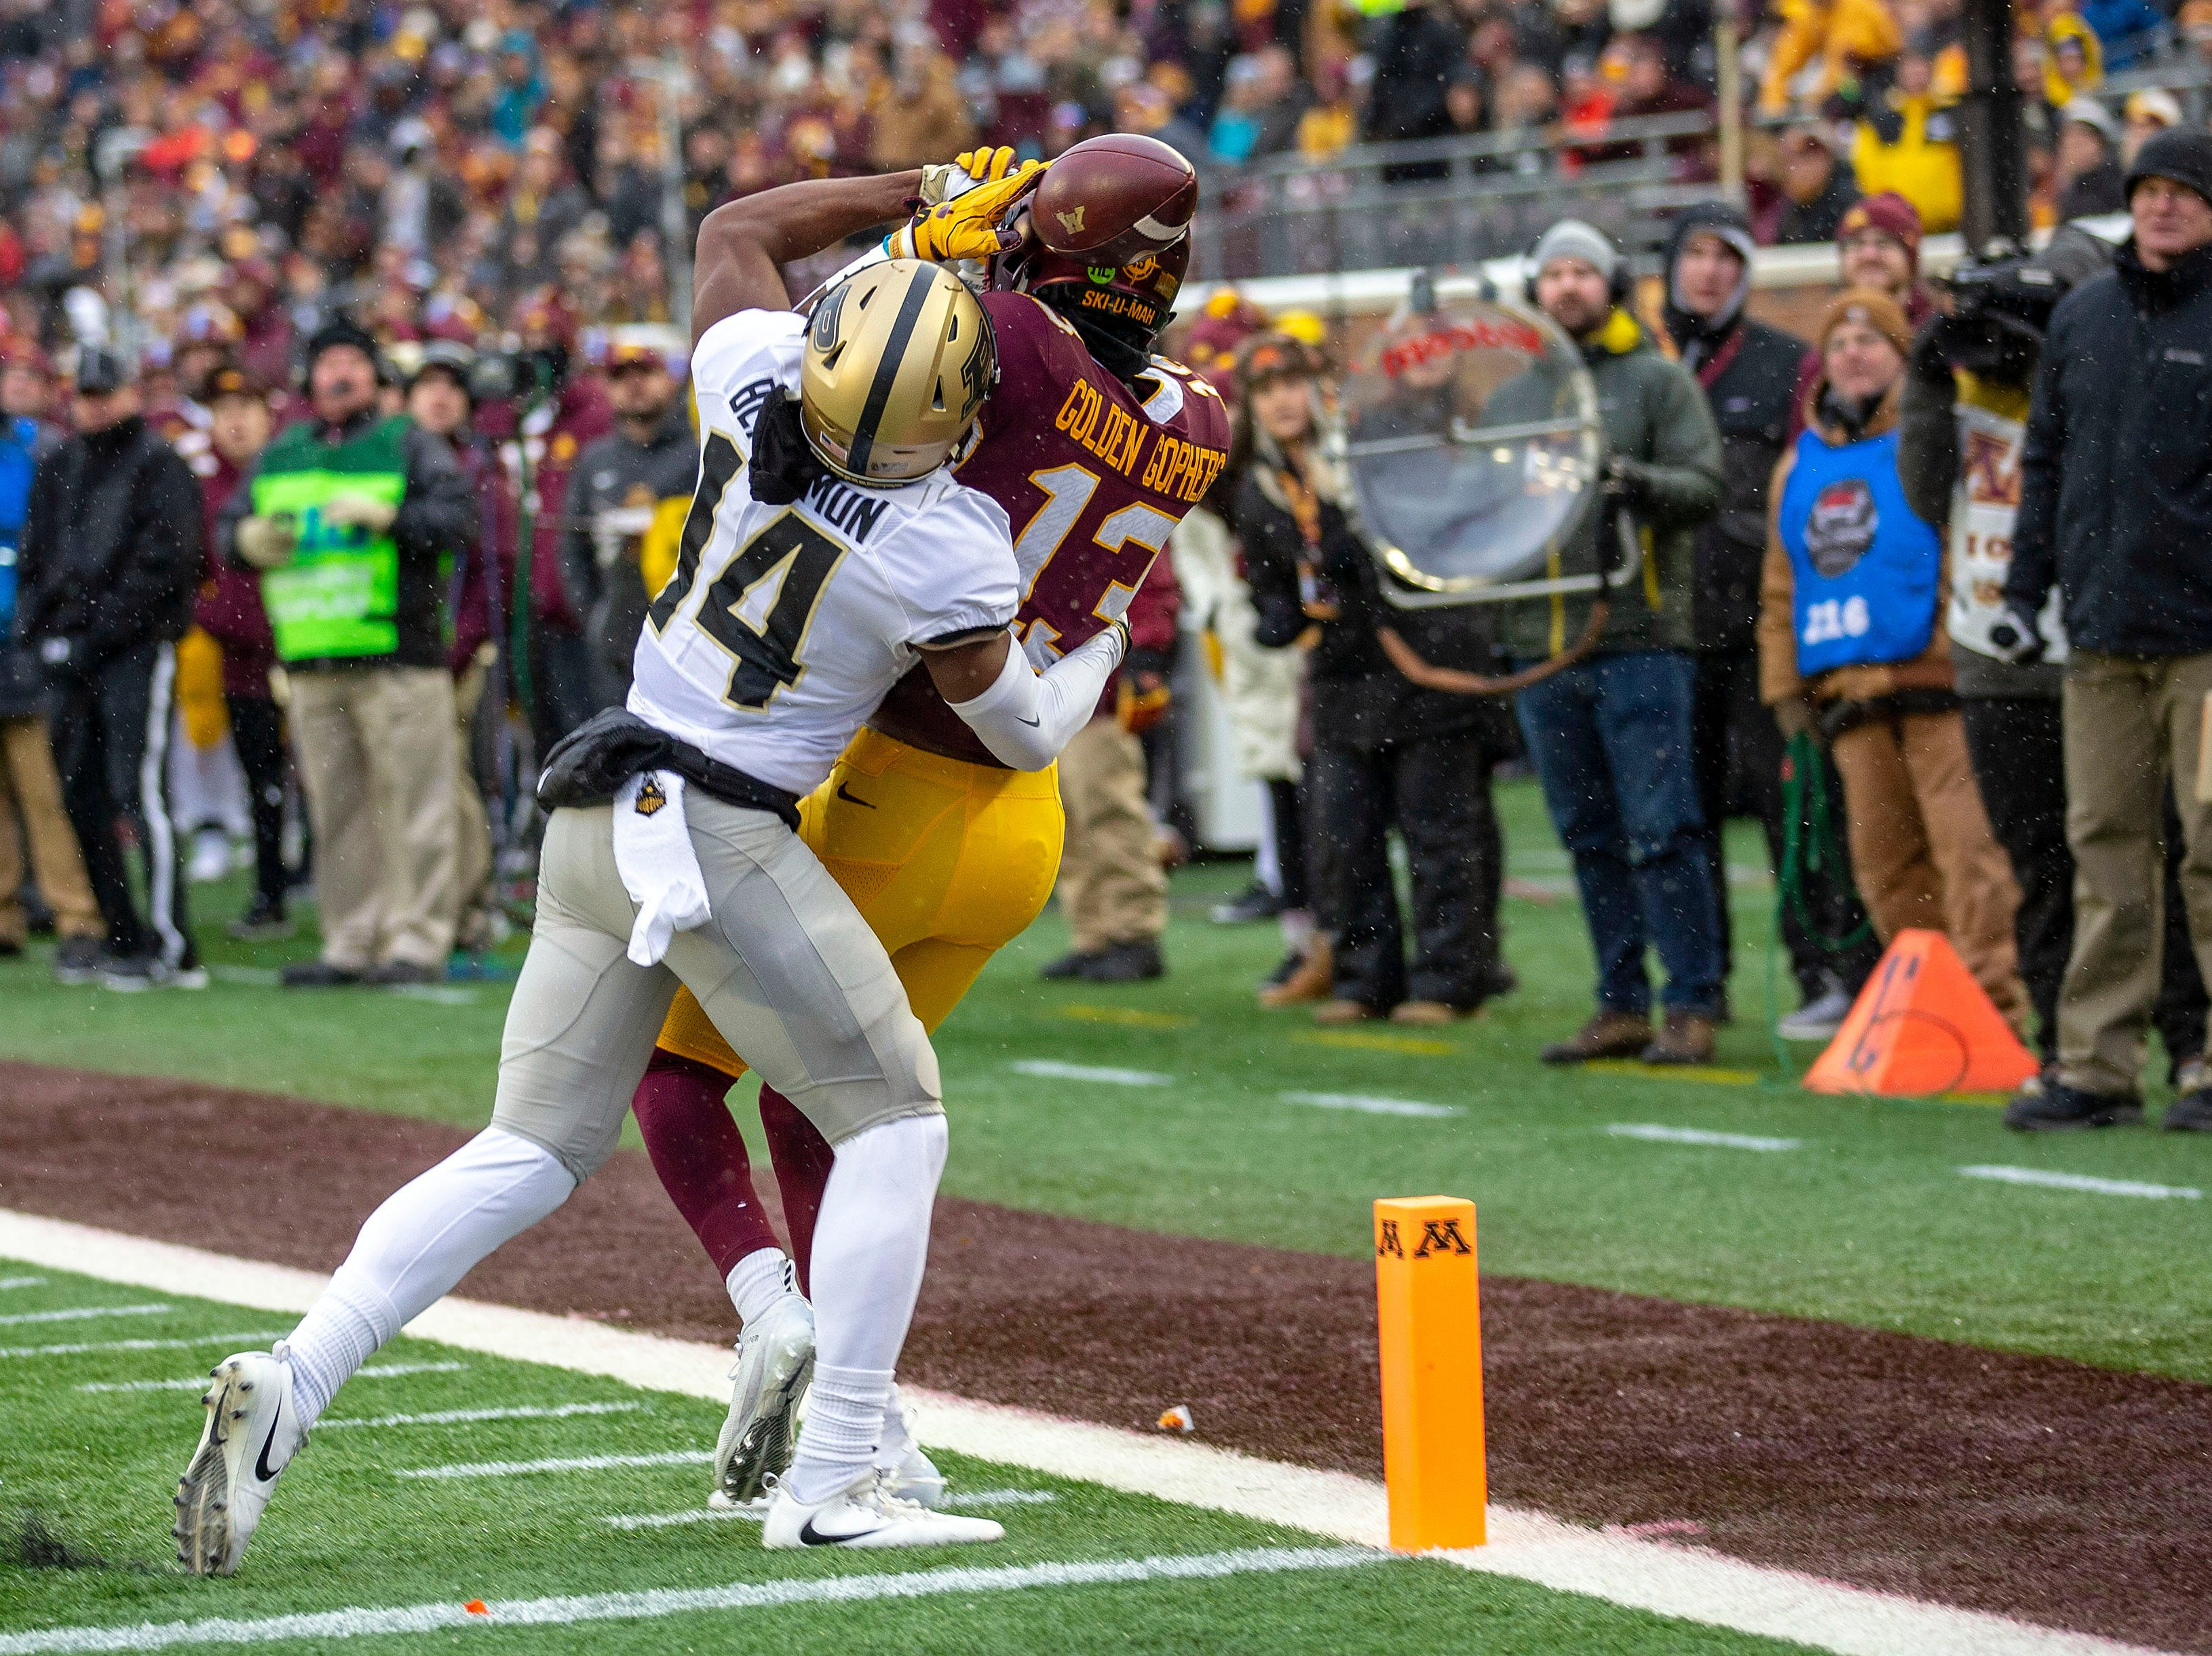 Nov 10, 2018; Minneapolis, MN, USA; Minnesota Golden Gophers wide receiver Rashod Bateman (13) attempts to catch a pass at the goalie as Purdue Boilermakers cornerback Antonio Blackmon (14) plays defense in the first half at TCF Bank Stadium. Mandatory Credit: Jesse Johnson-USA TODAY Sports